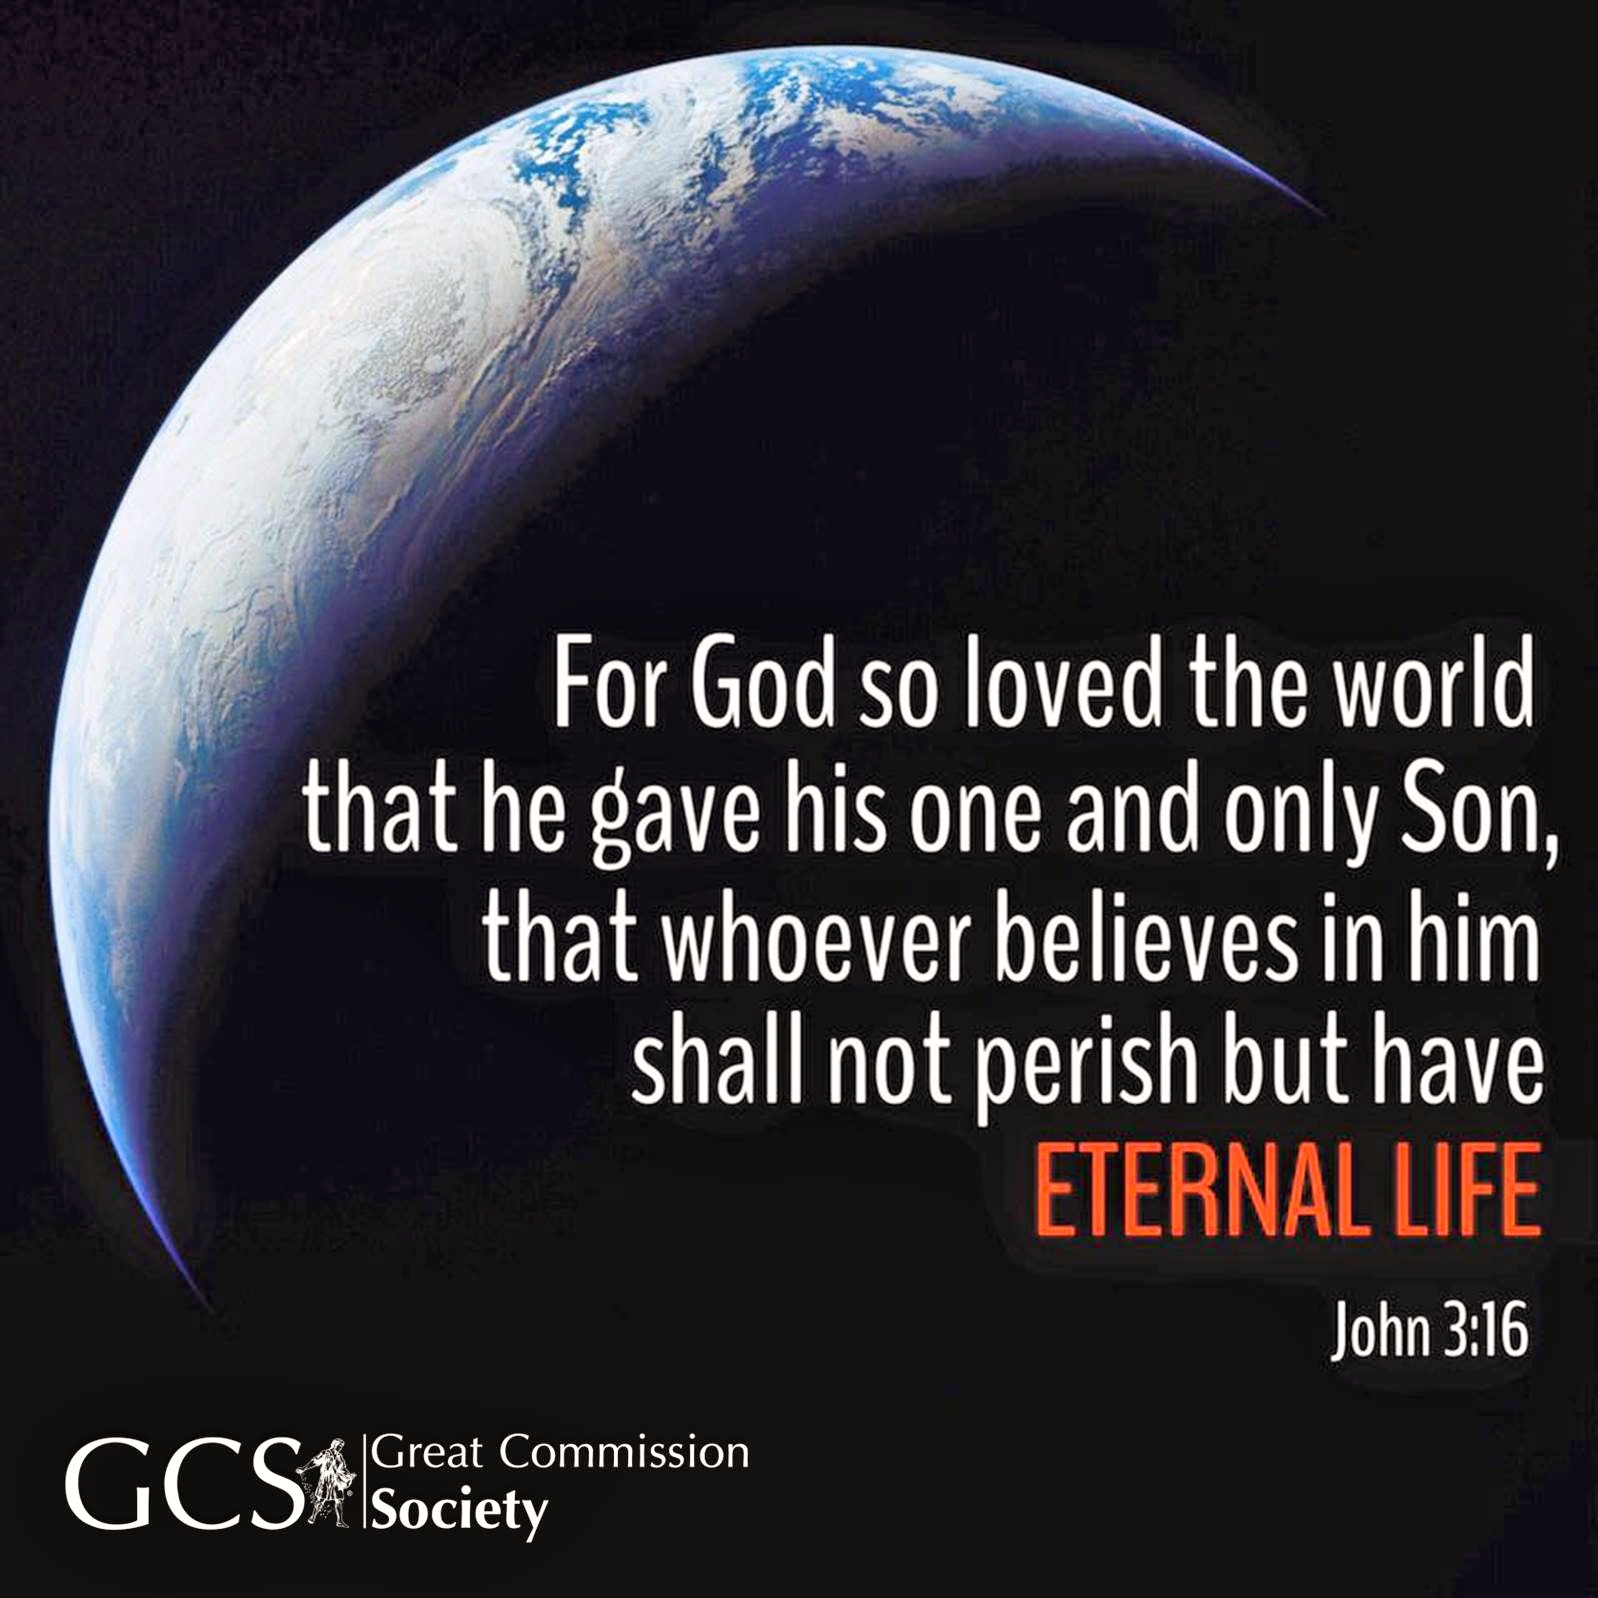 Why The Great Commission Society?